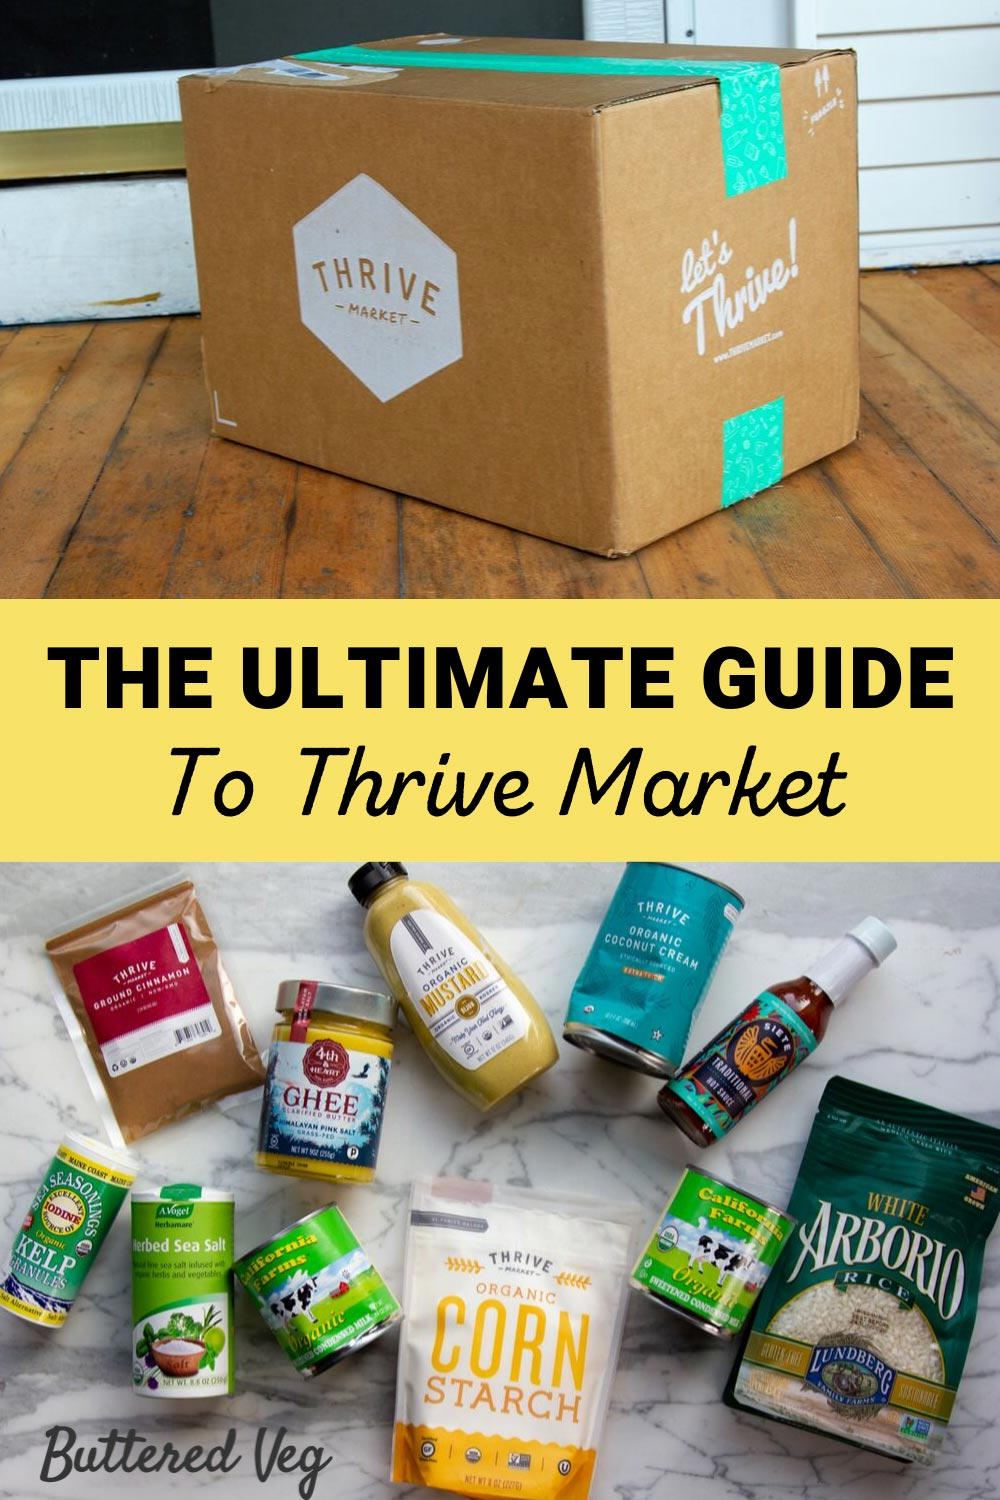 The Ultimate Guide To Shopping At Thrive Market